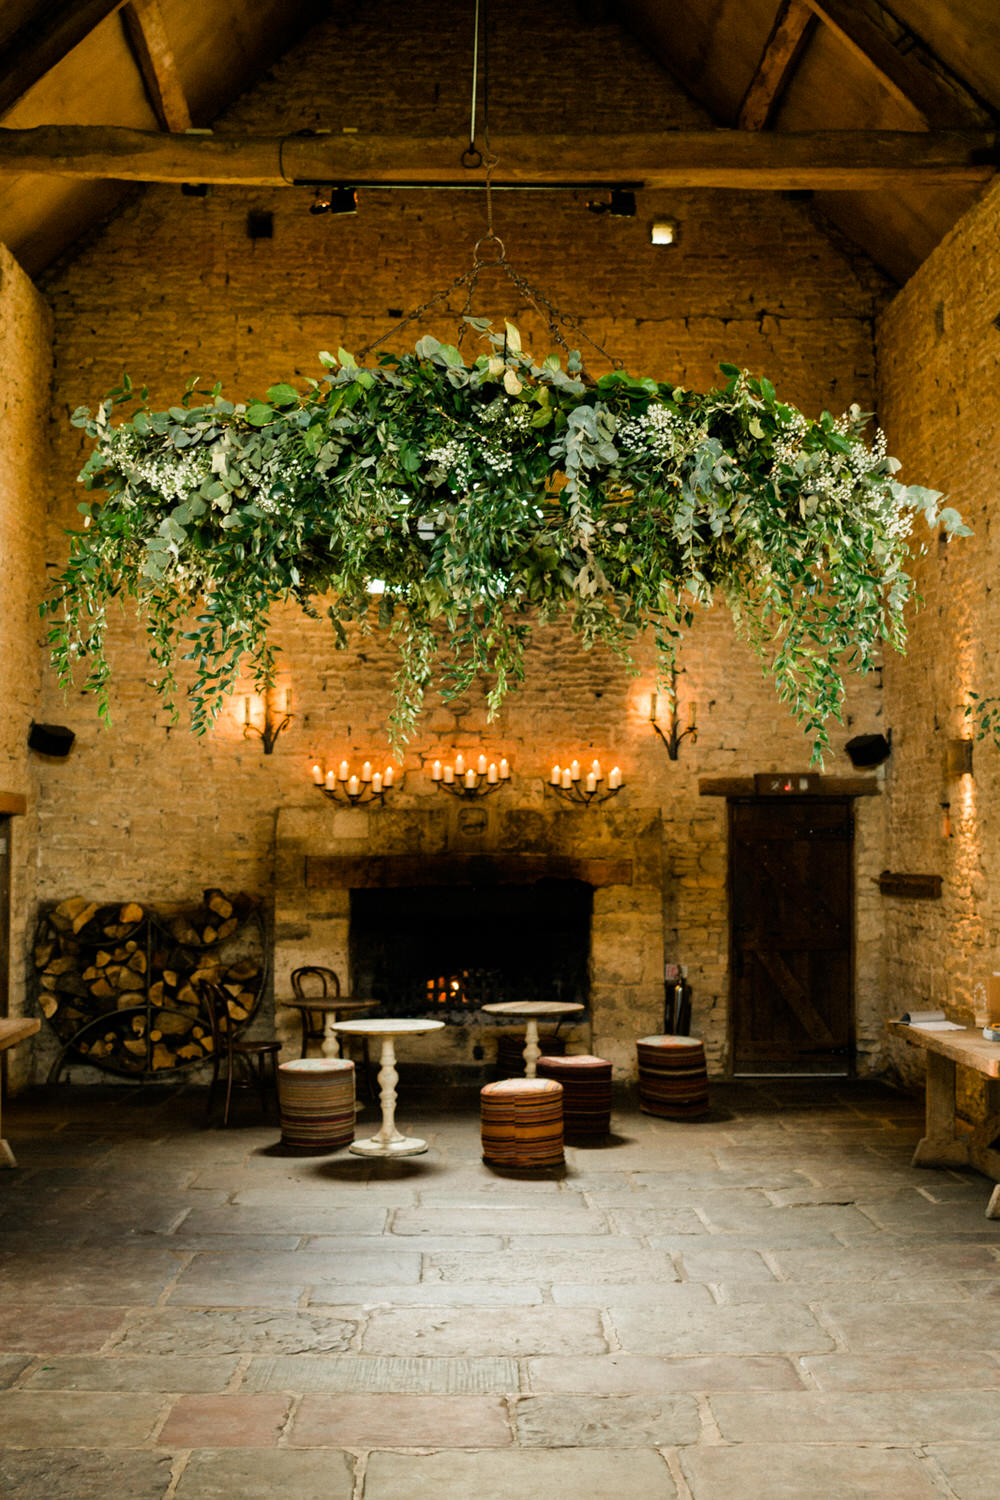 Special-Day-Photography-Cripps-Barn-Cirencester-the-Interior-floral-wreath-Interior-wedding-styling.jpg